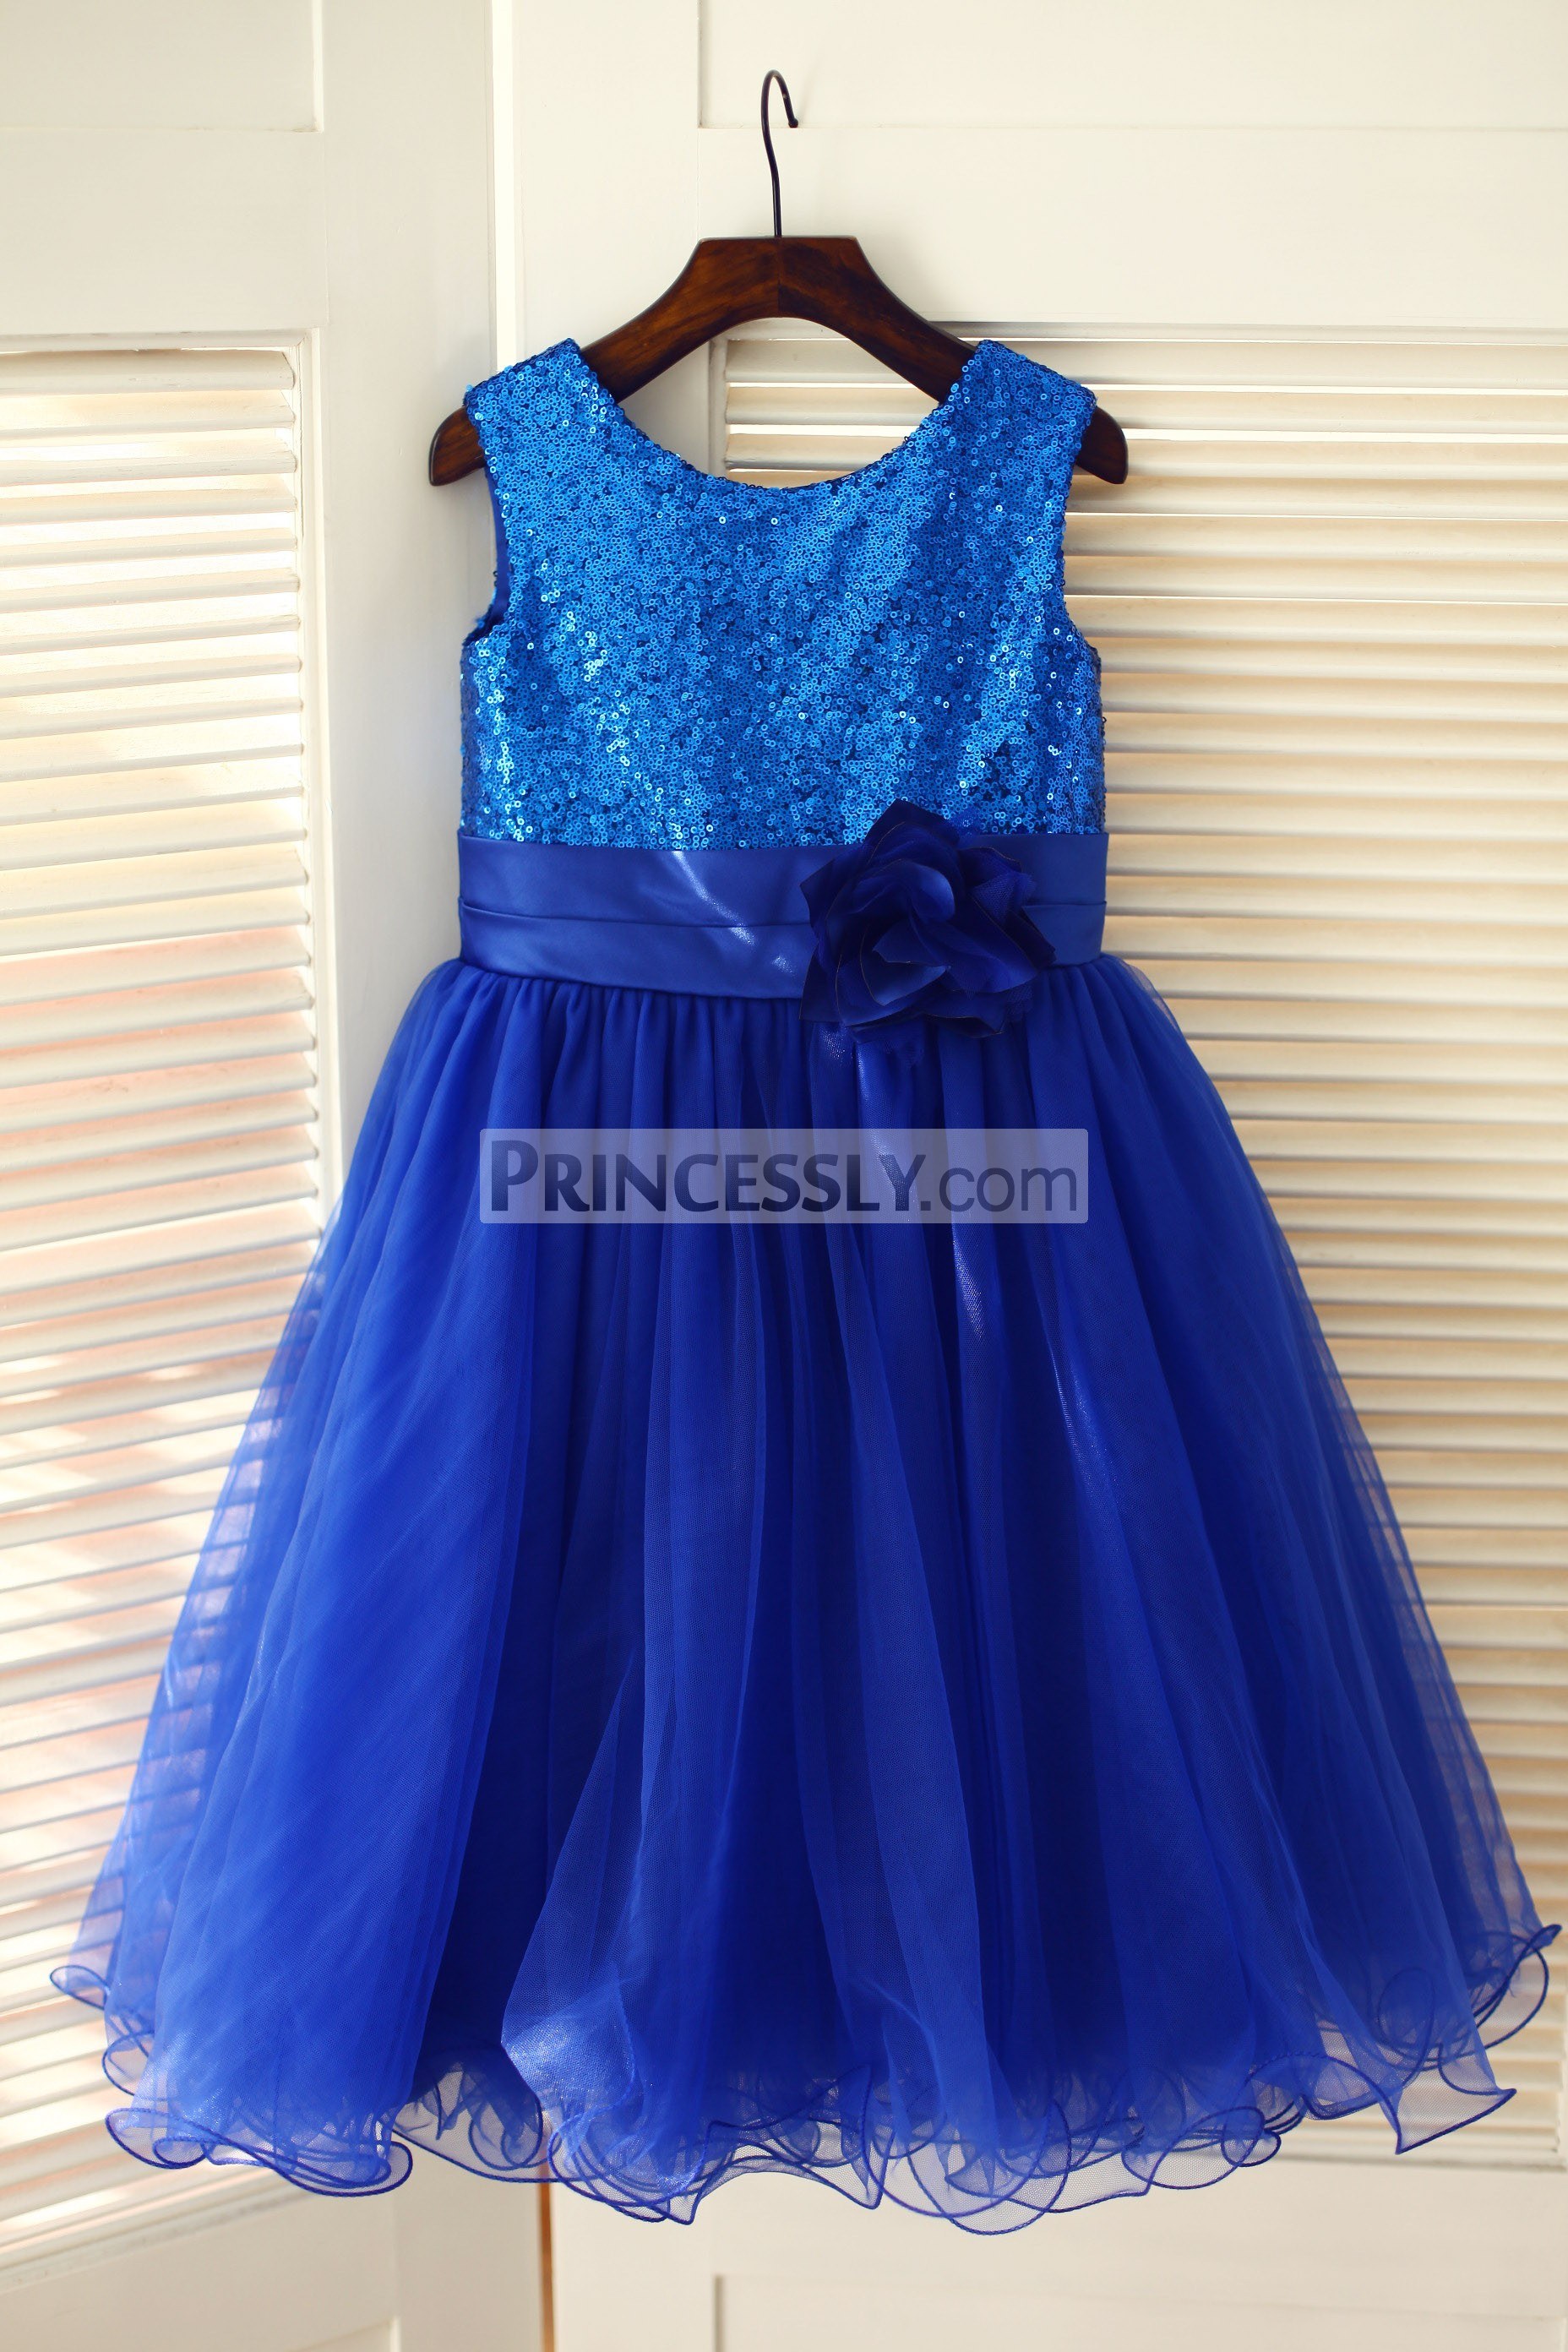 Blue sequins tulle wedding baby girl dress with belt and flower